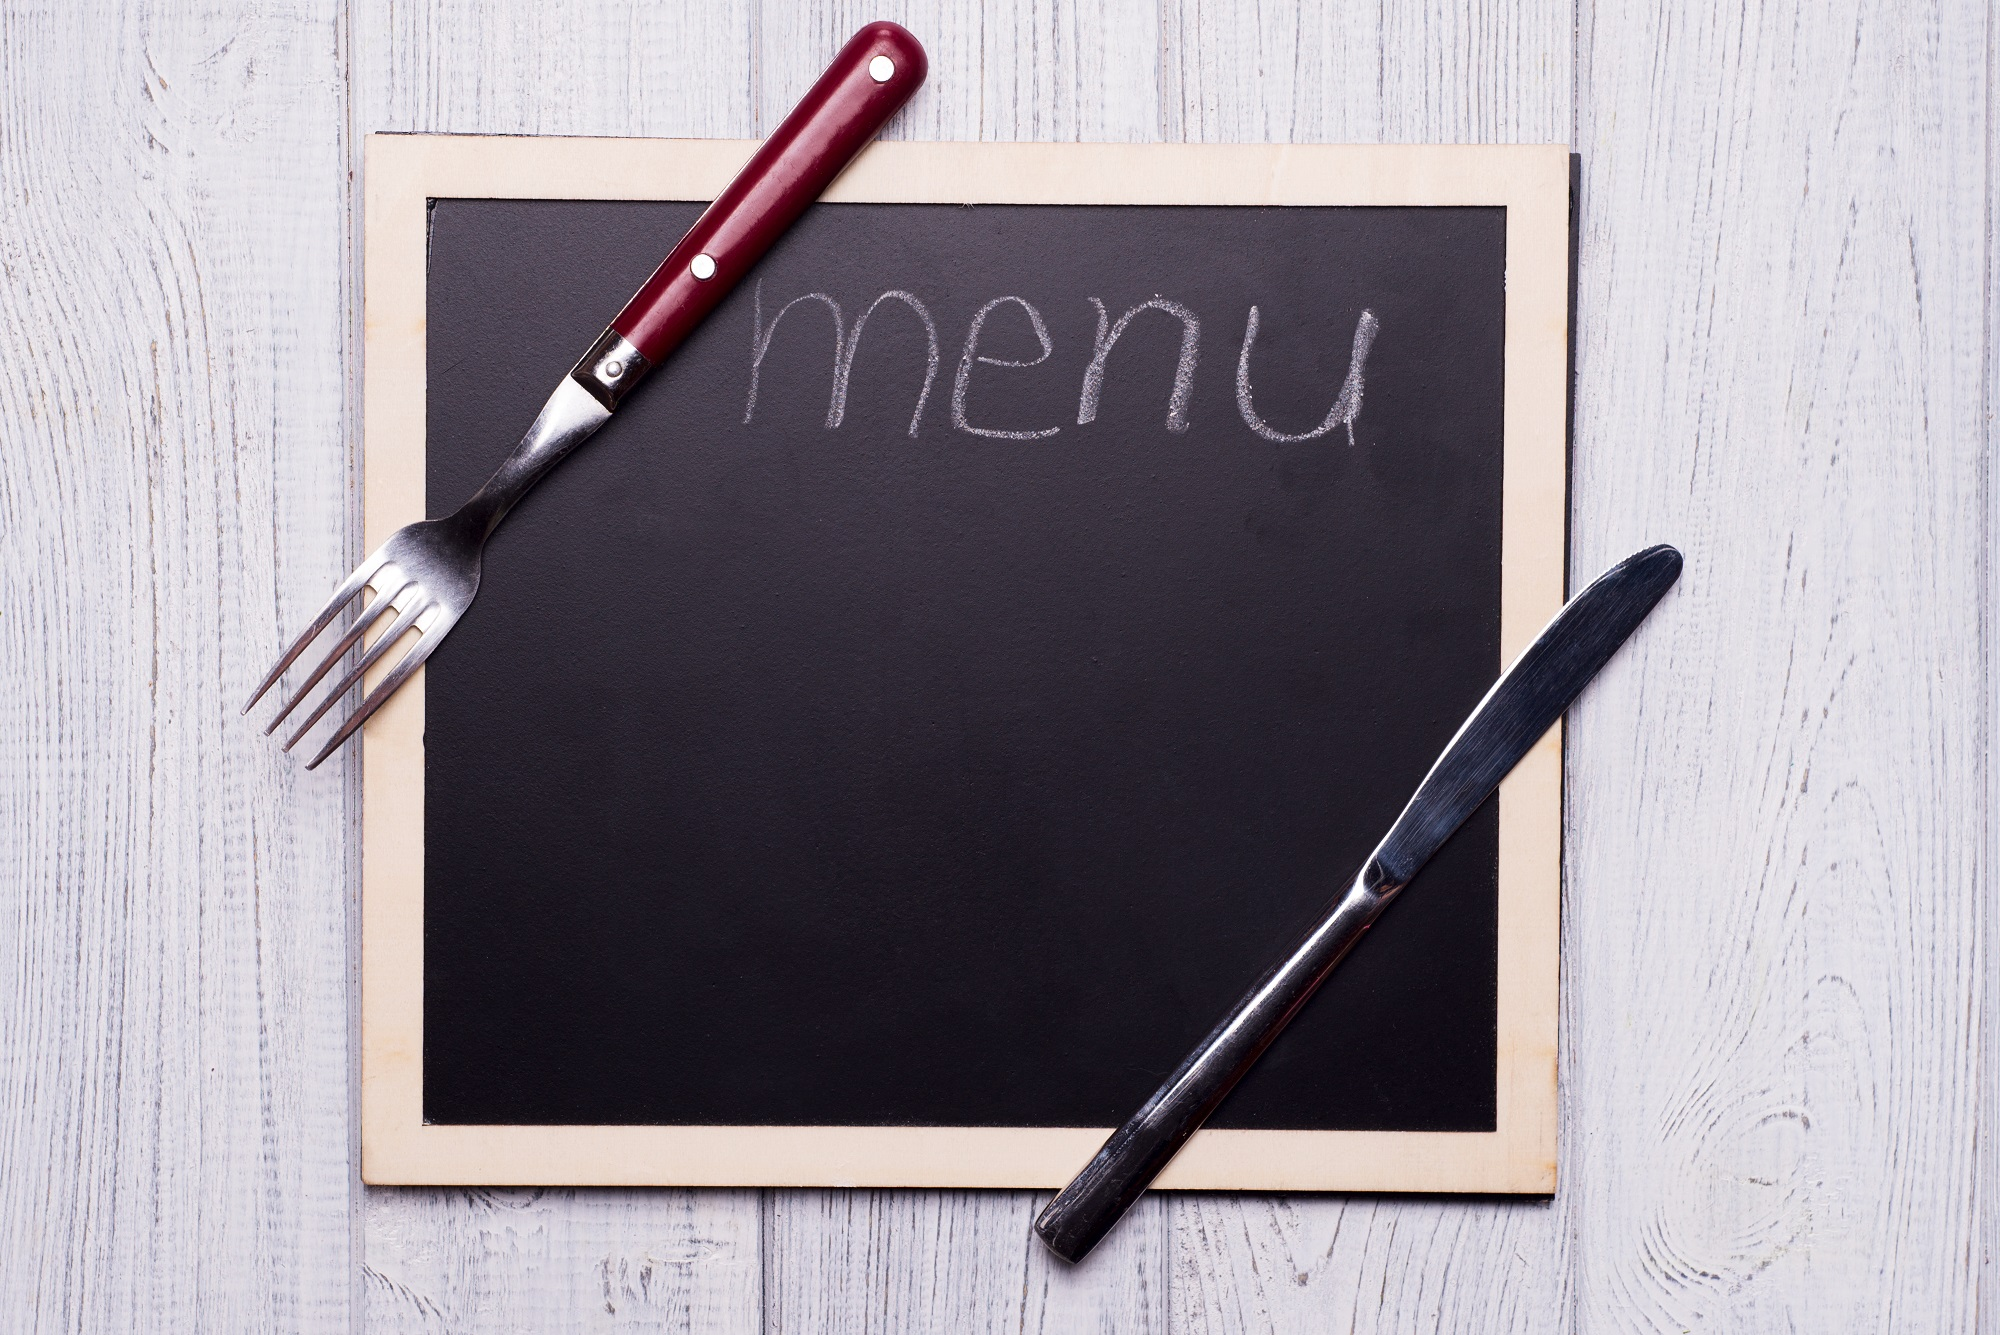 restaurant menu is another very powerful restaurant industry trend